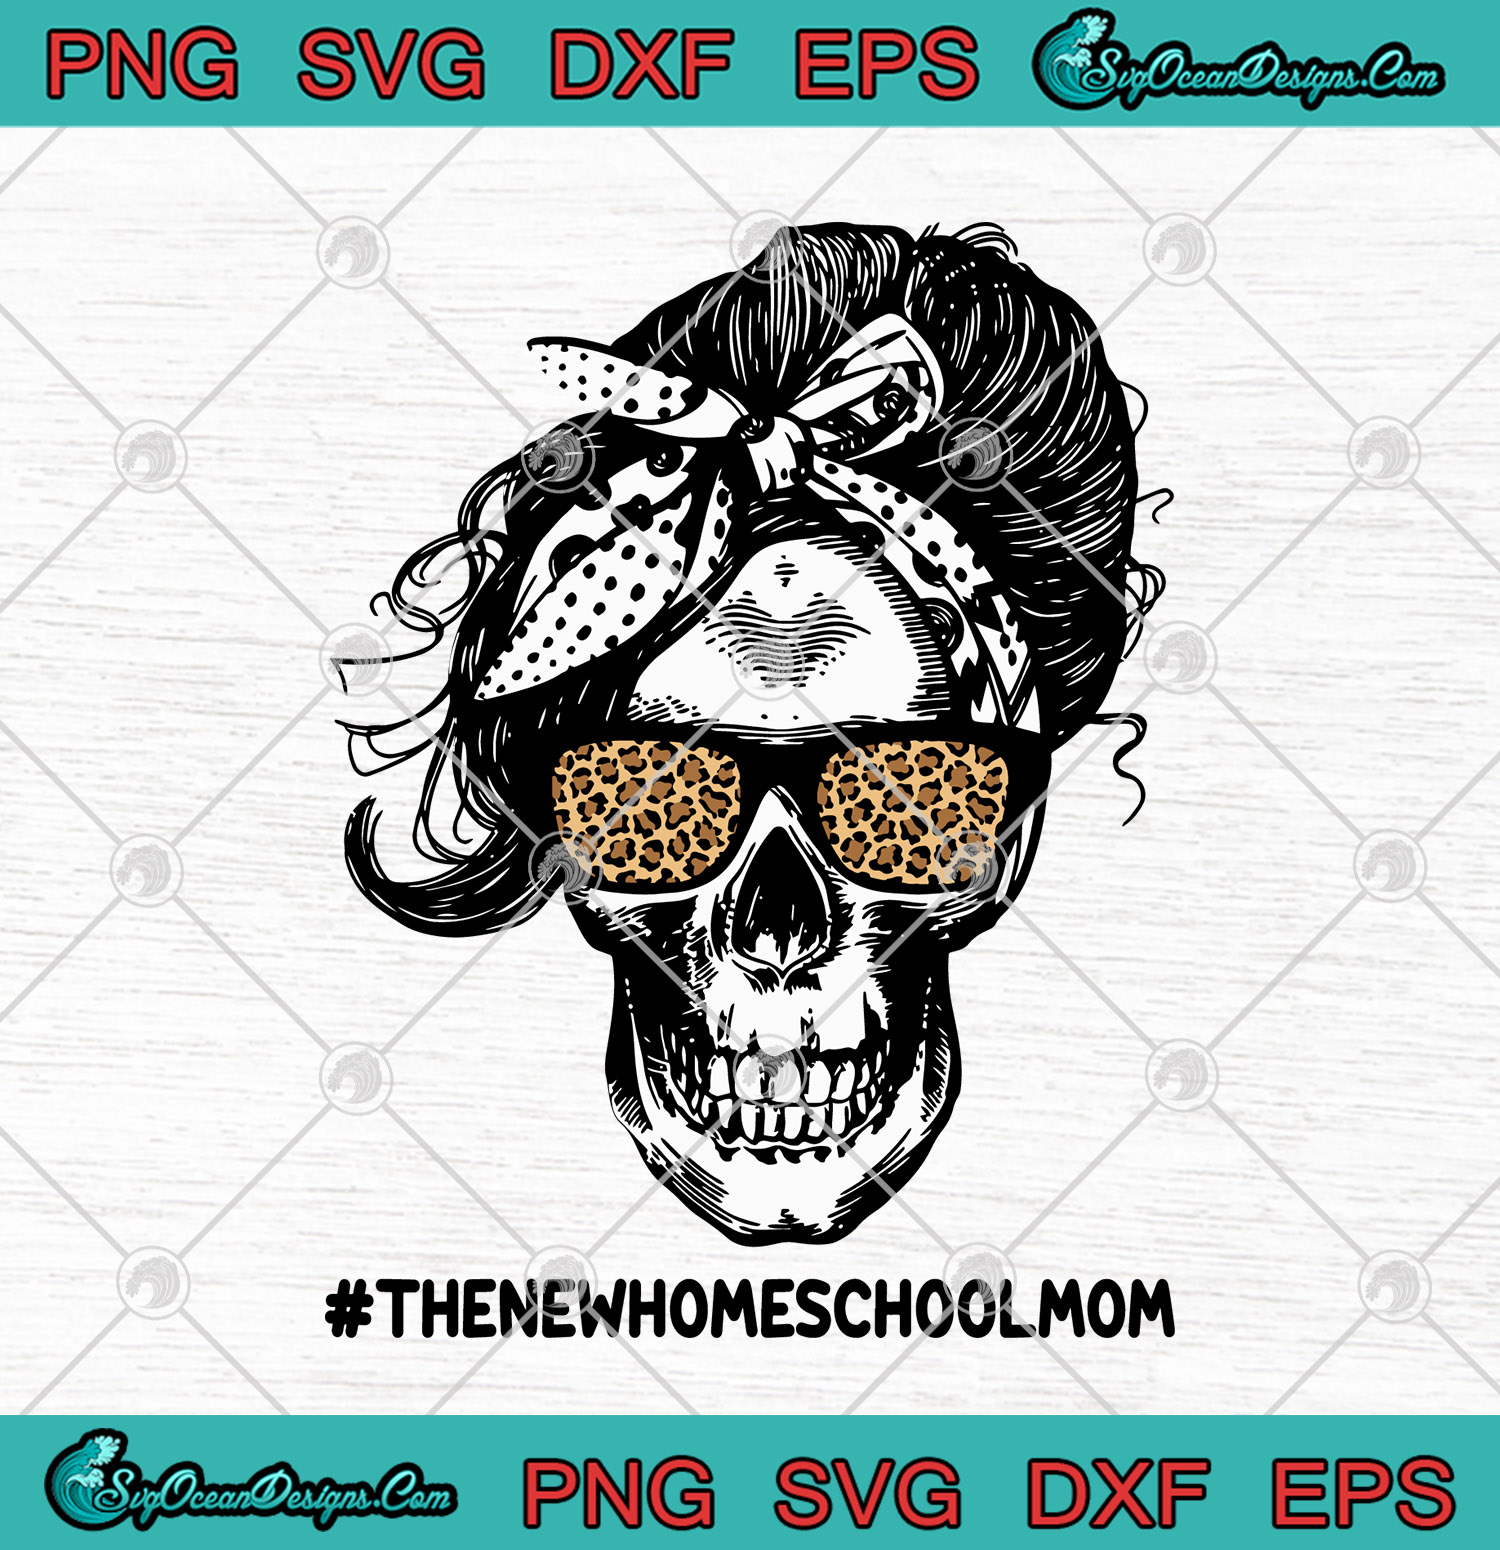 Skull The New Homeschool Mom Svg Png Eps Dxf Mom Of The Skull Svg Png Cutting File Cricut Silhouette Art Designs Digital Download